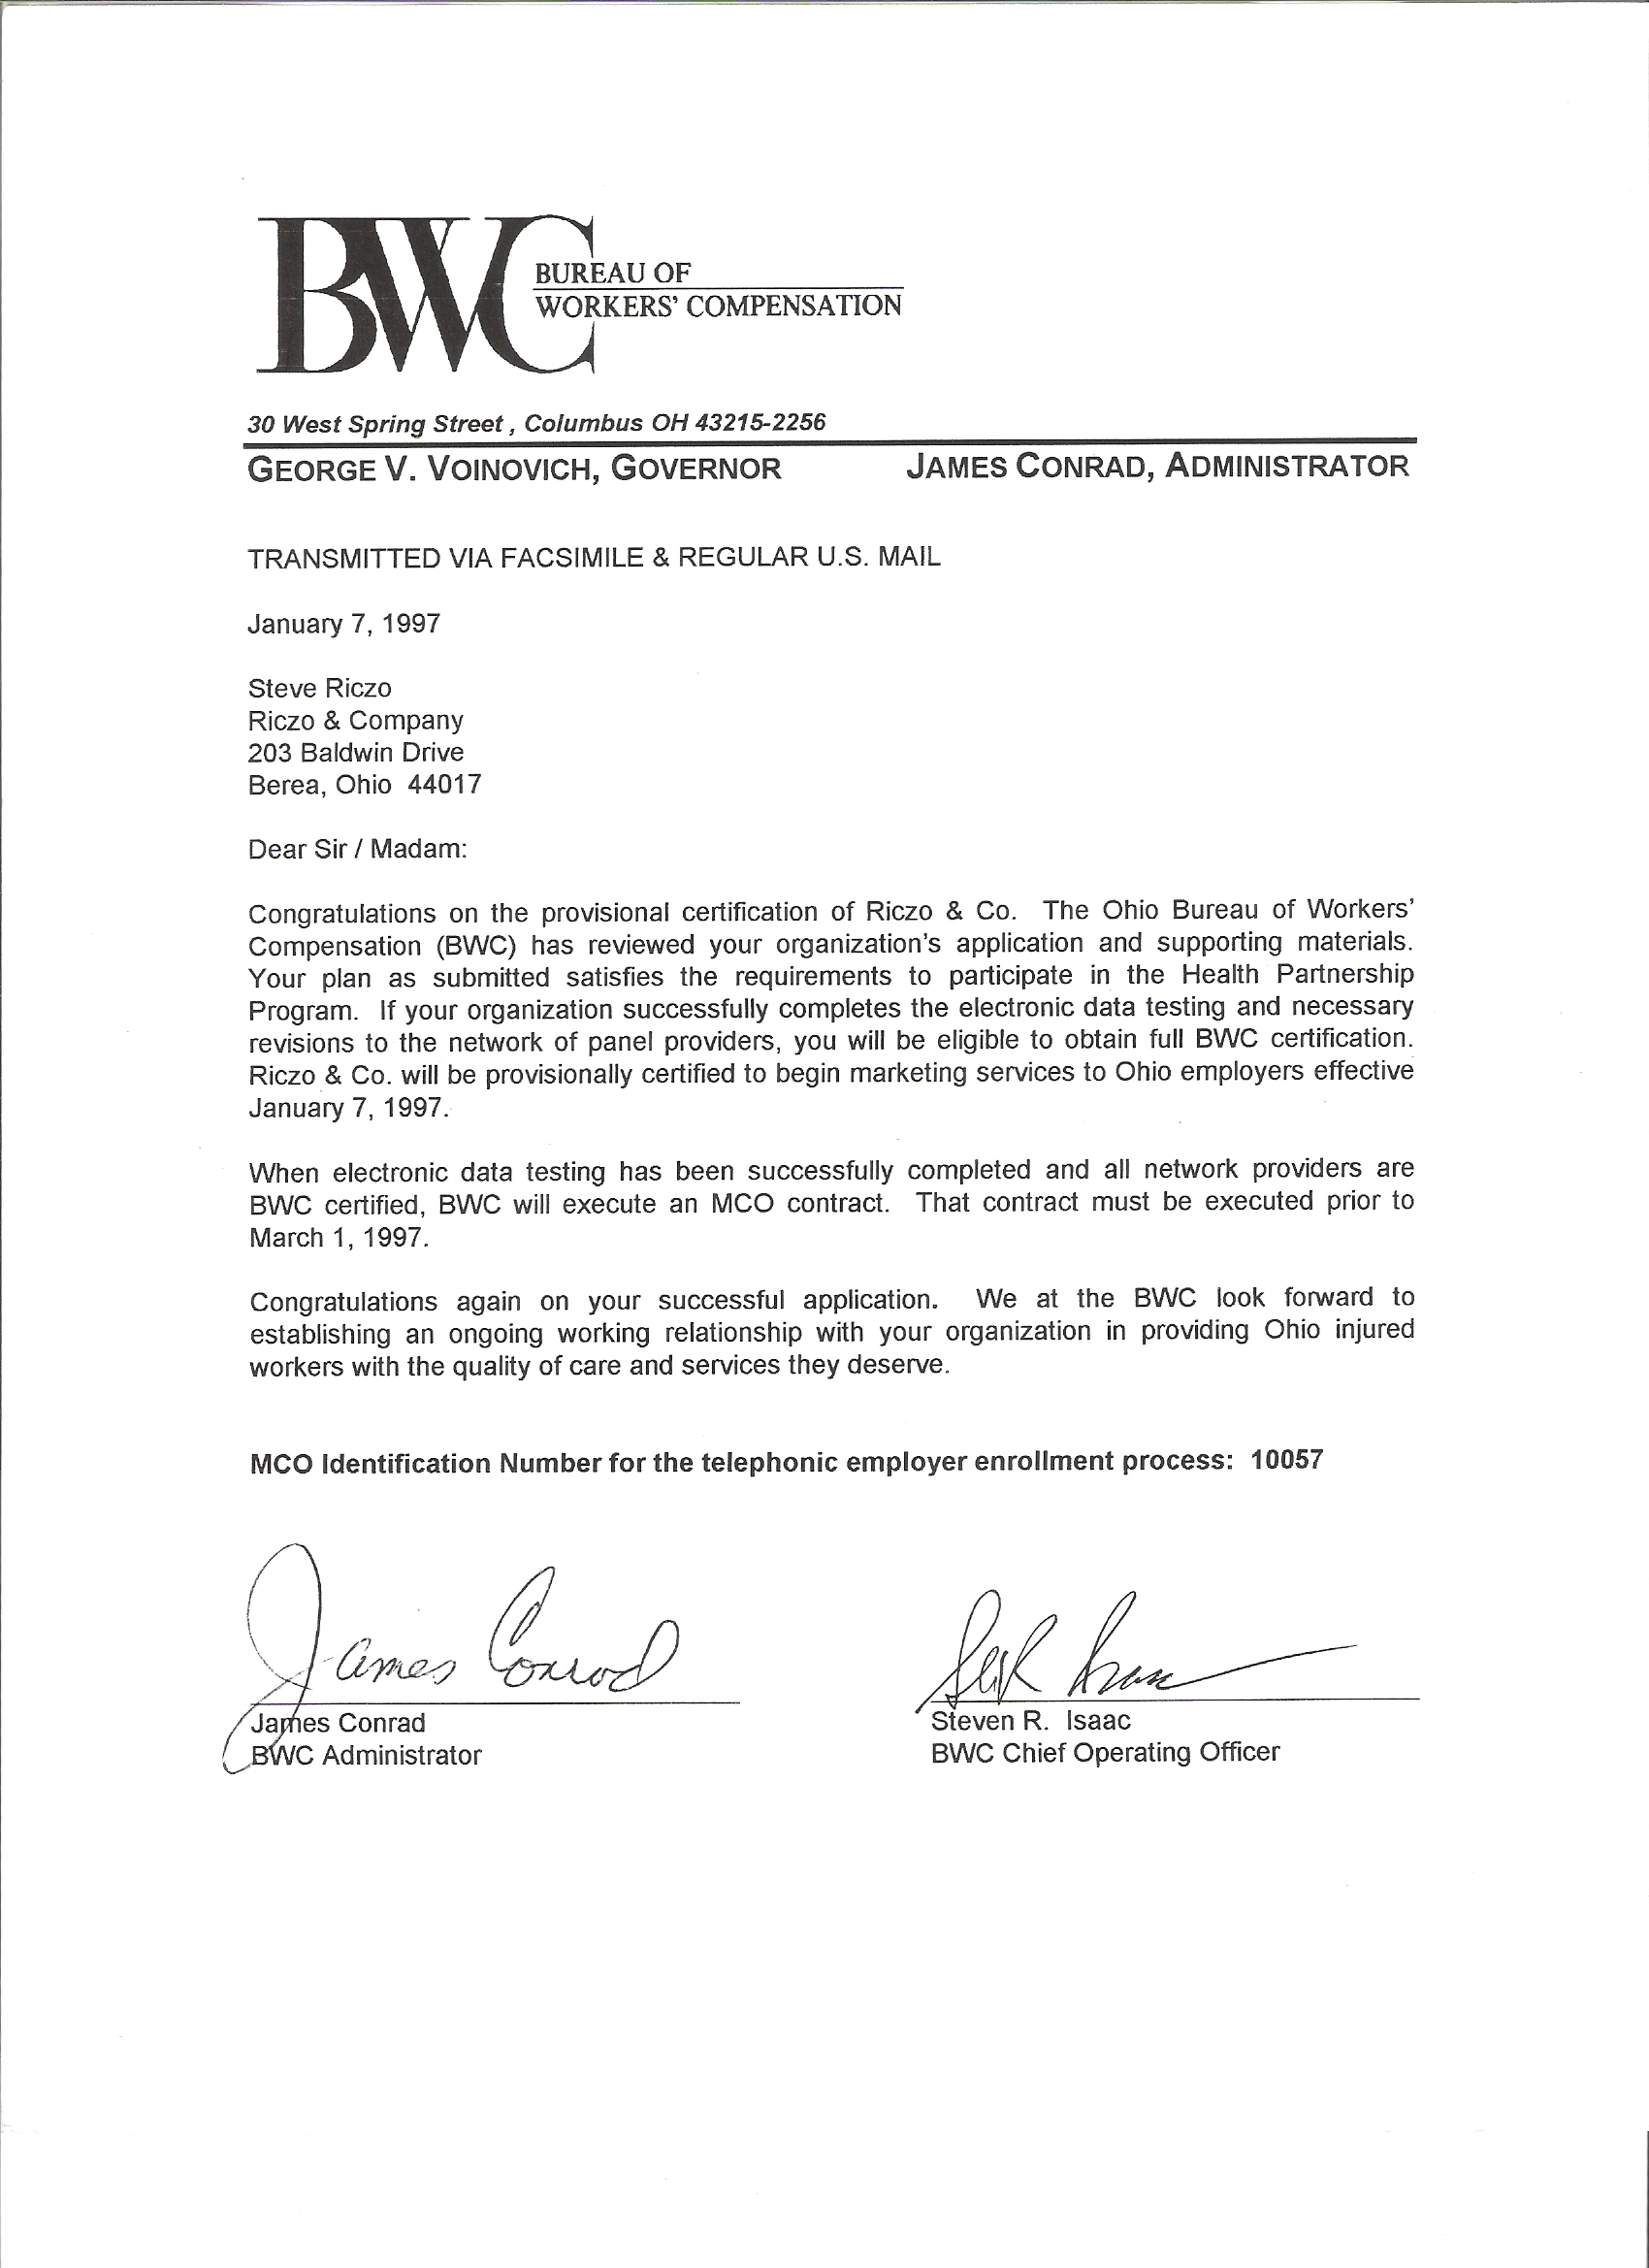 mco report card for riczo co and letter of approval from ohio bureau of workers 39 compensation